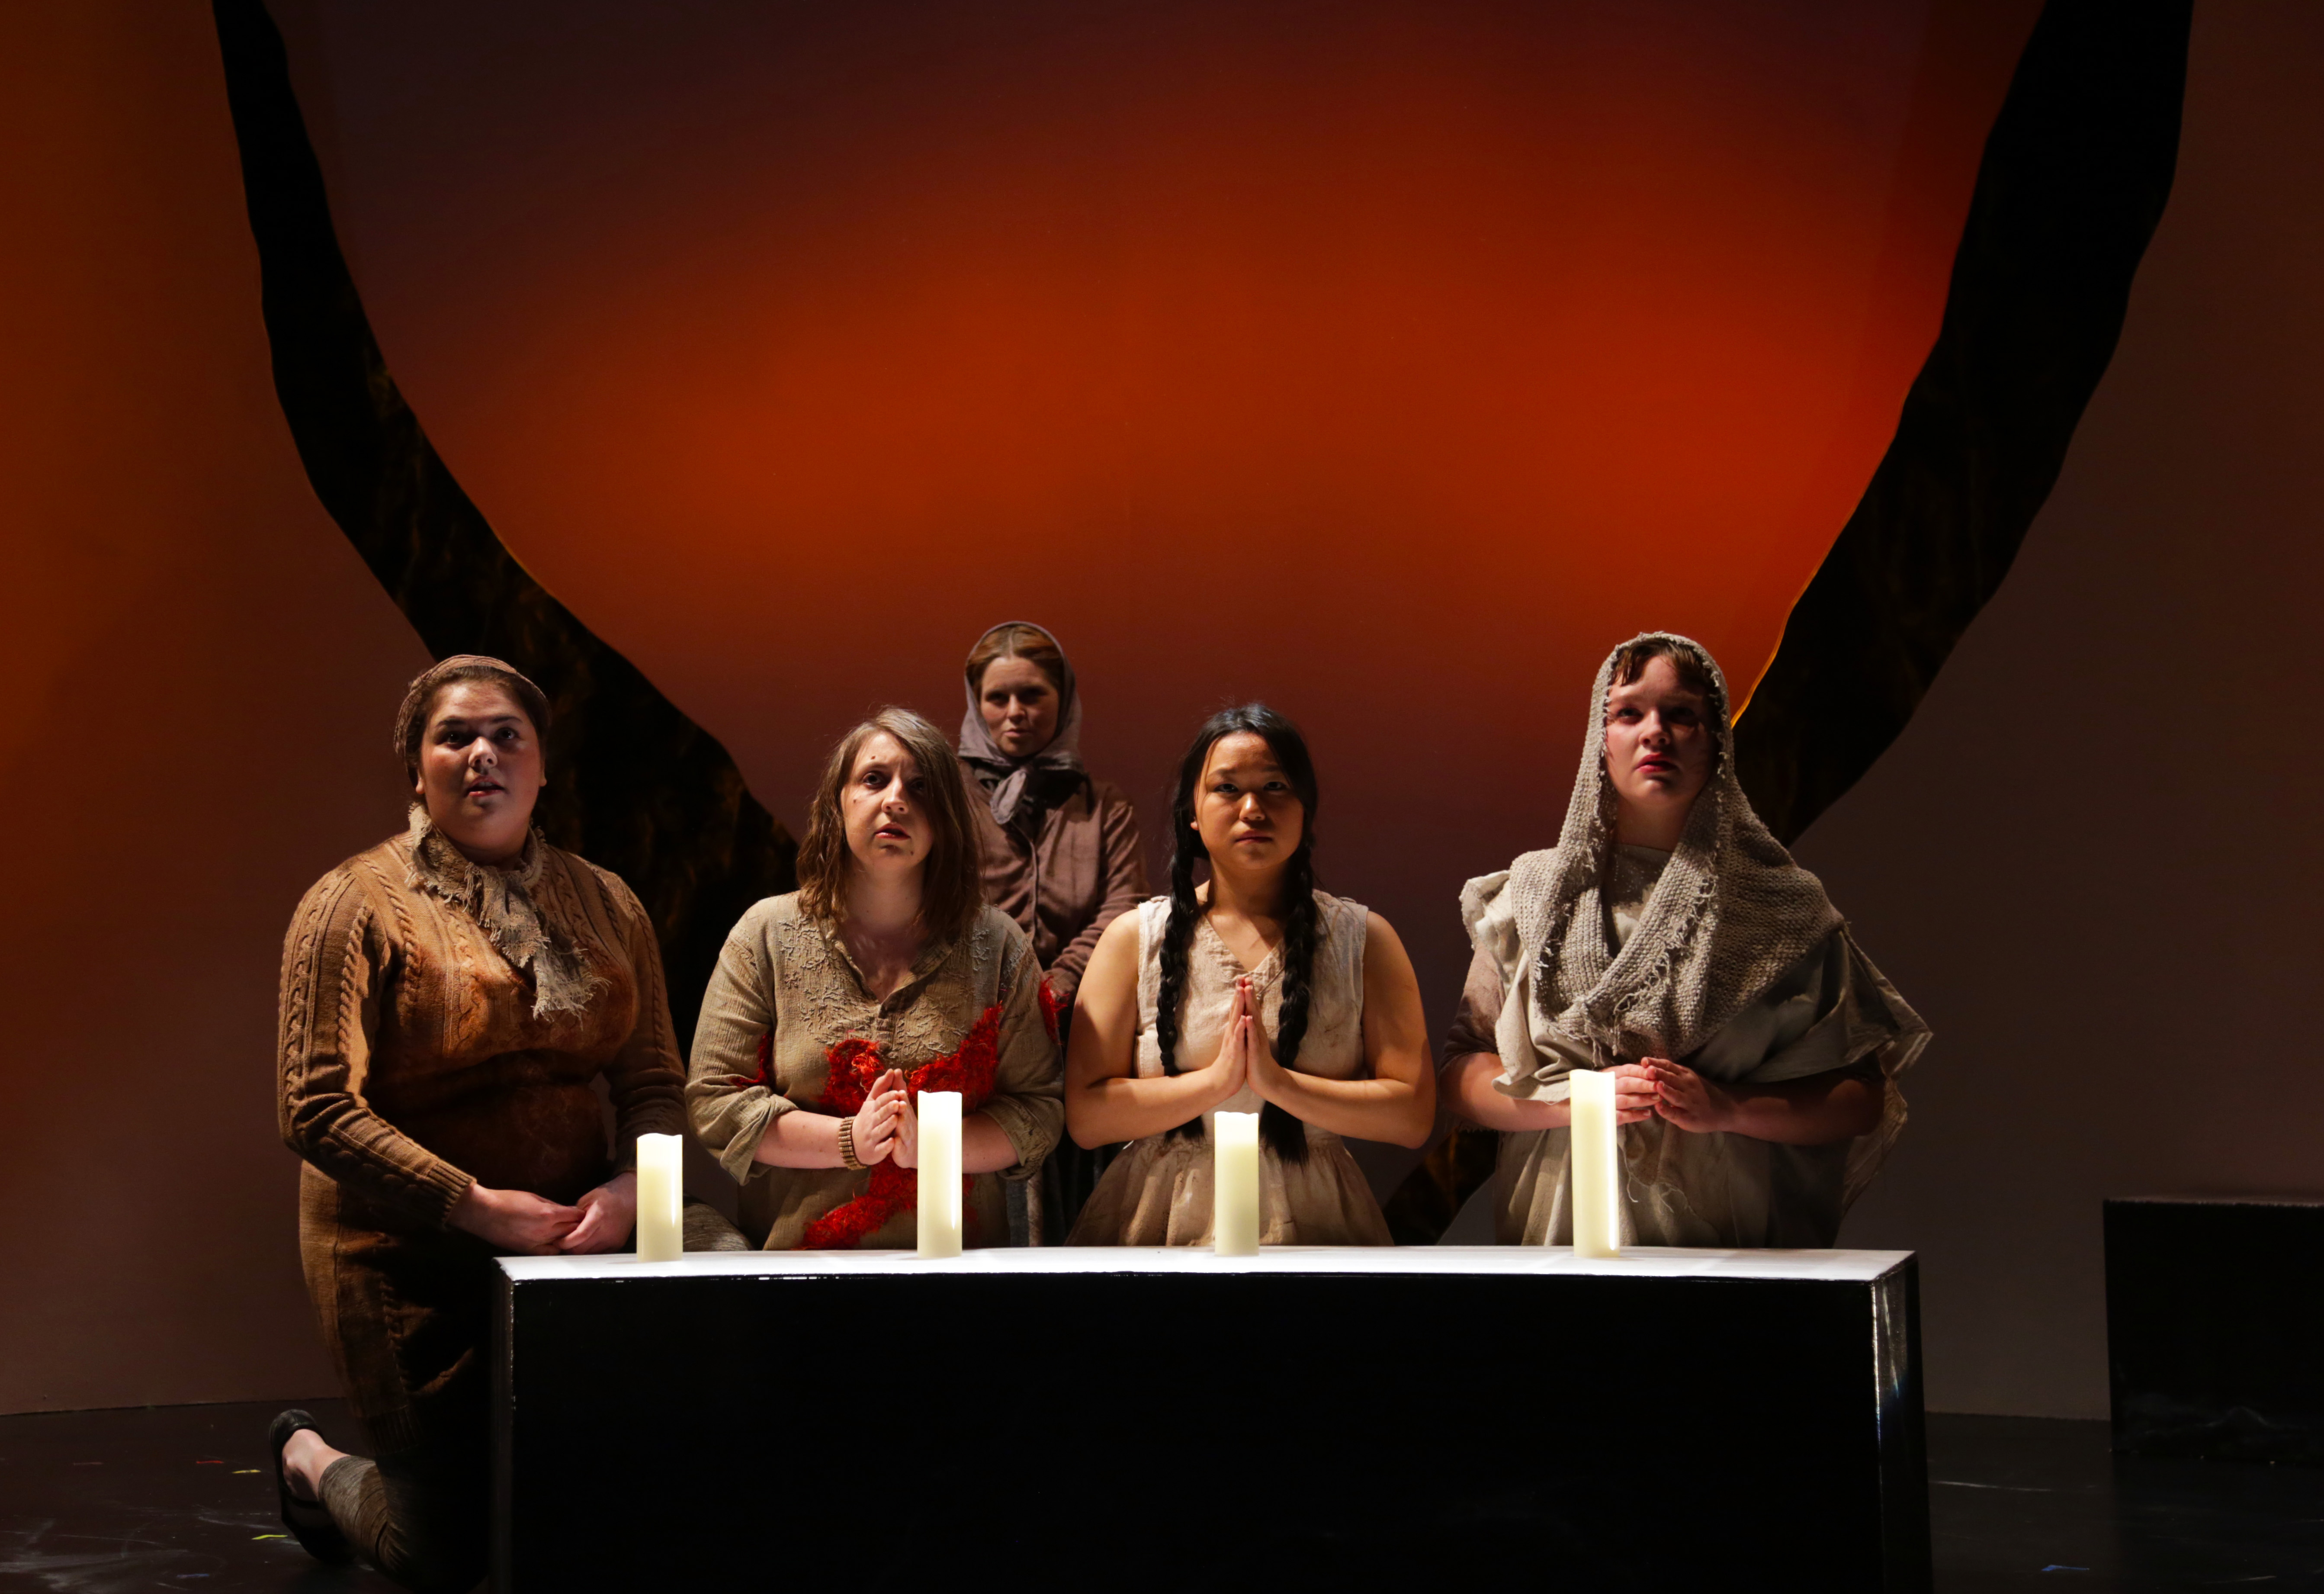 From left, Eilis Garcia (The Pregnant One), Elizabeth Jebran (The Bleeding One), Adrianna Simmons (The One with Dwindling Dignity), Pearl Matteson (The Young One), and Willow Giannotti-Garlinghouse (The Pious One) in Connecticut Repertory Theatre's production of 'If We Were Birds' by Erin Shields, onstage in the Studio Theatre through April 7. (Gerry Goodstein for UConn)